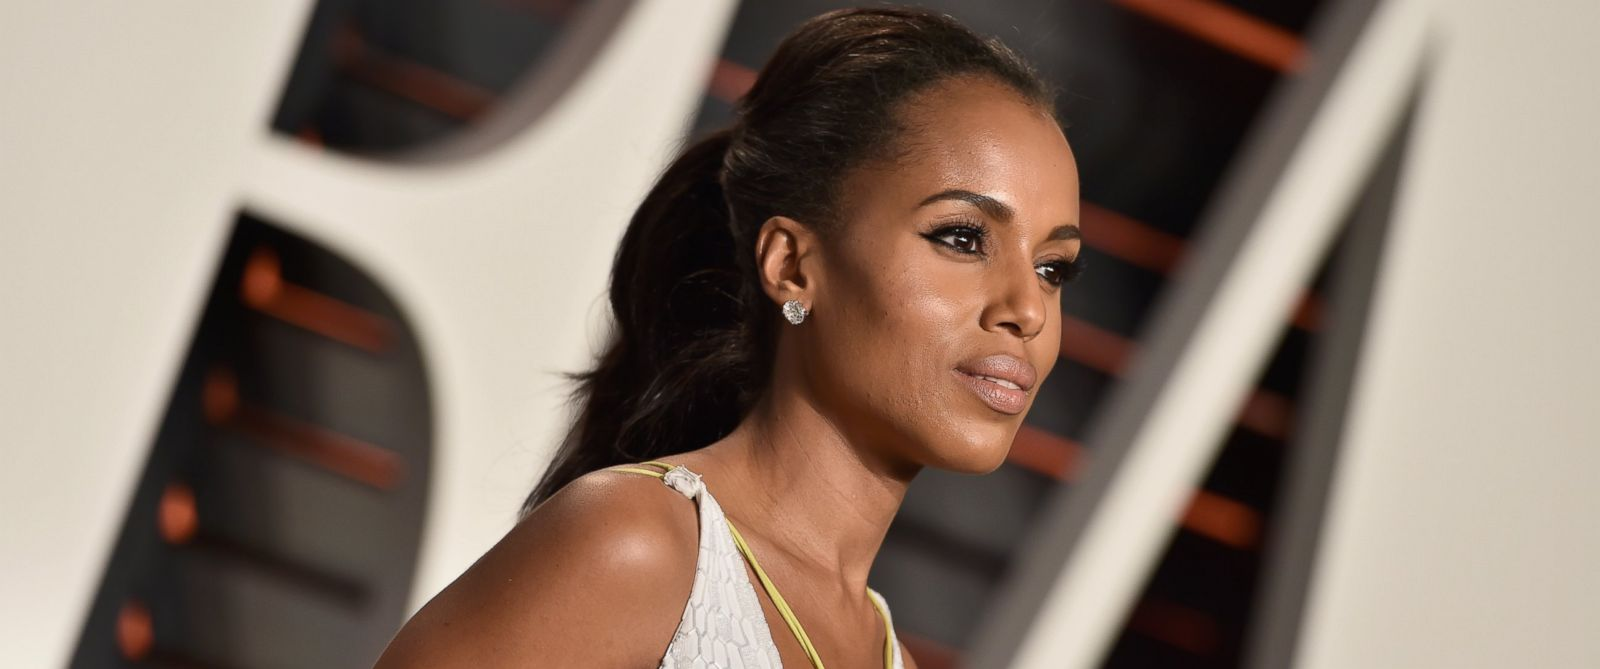 PHOTO: Kerry Washington attends the 2016 Vanity Fair Oscar Party Hosted By Graydon Carter at the Wallis Annenberg Center for the Performing Arts, Feb. 28, 2016 in Beverly Hills, Calif.